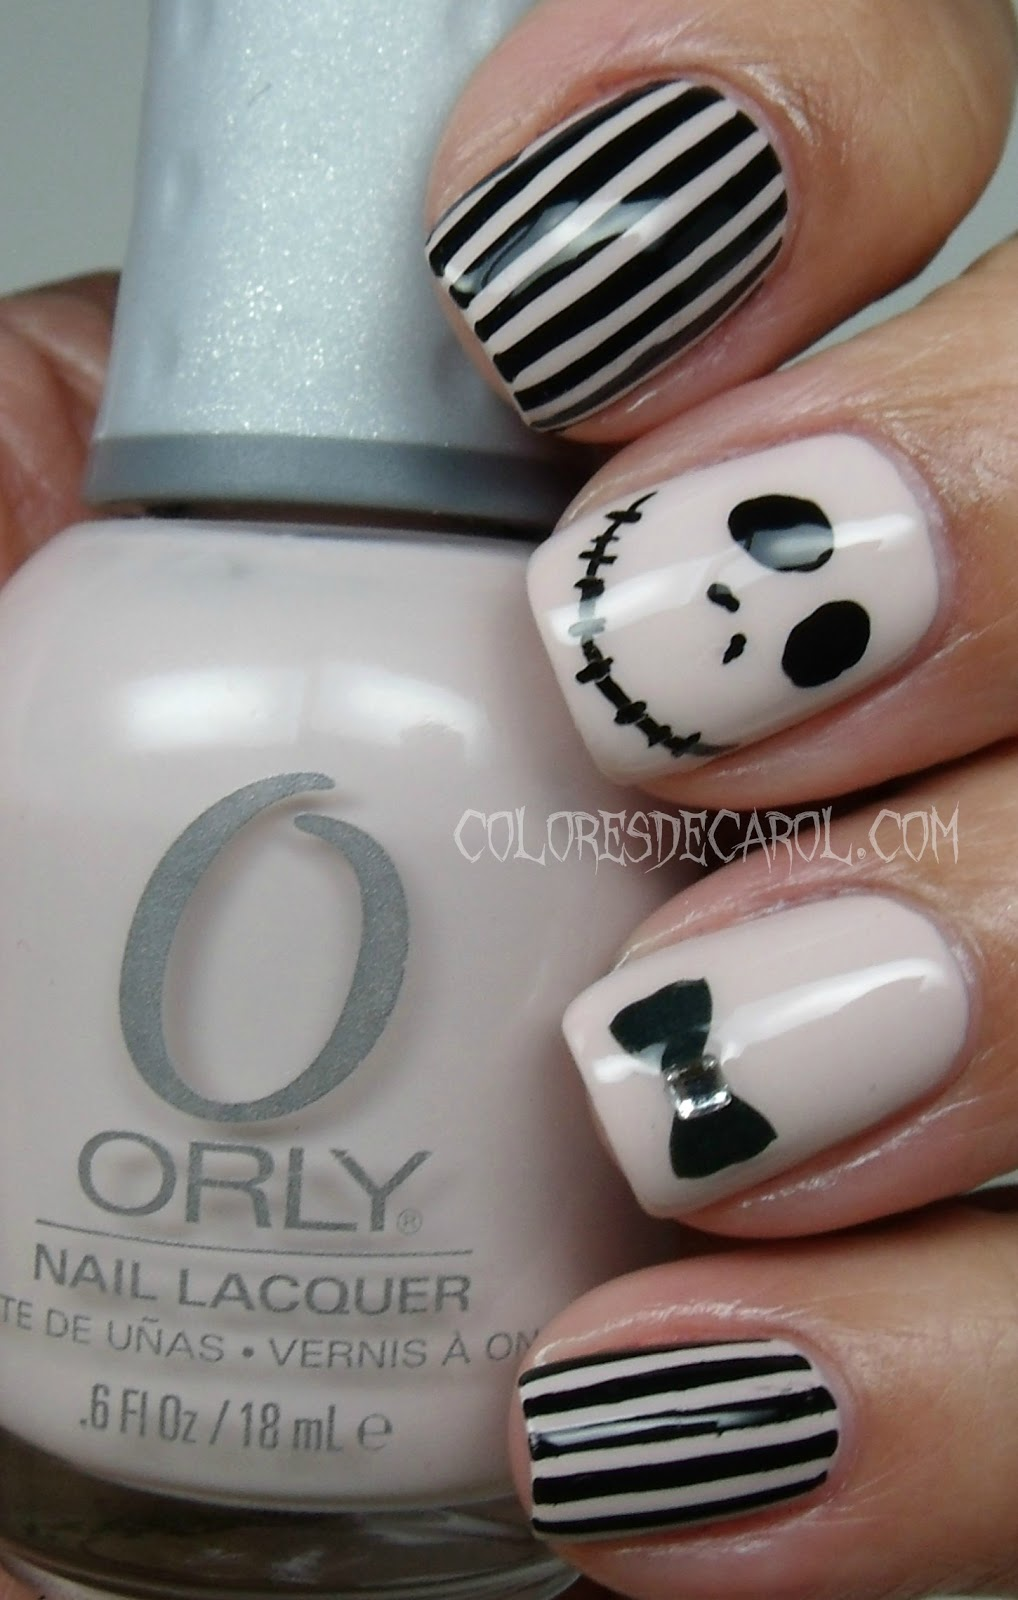 Colores de Carol: Jack Skellington - Halloween Manicure